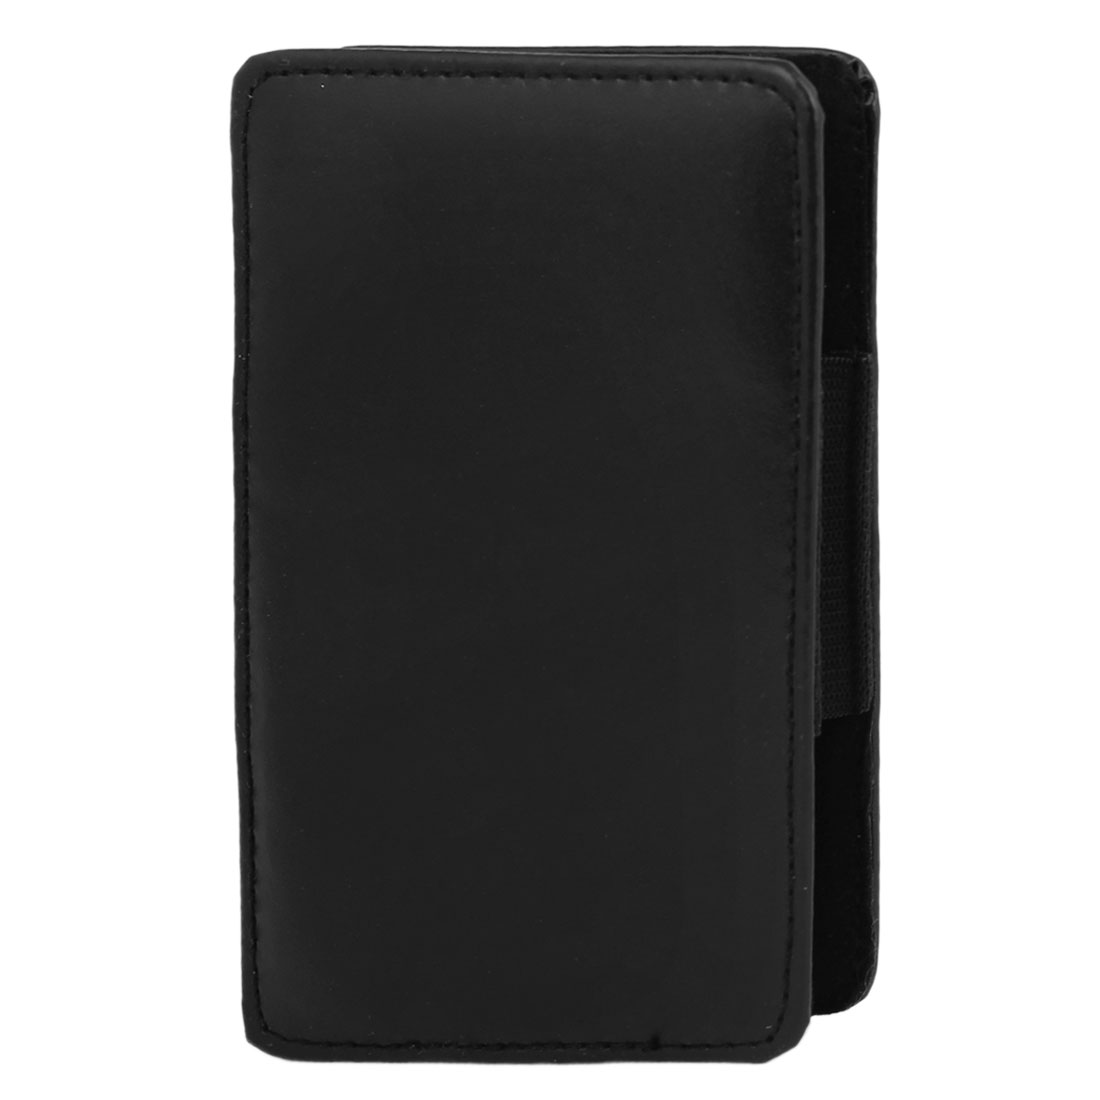 "Black Leather Case Cover Box for 2.5"" HDD Hard Drive Disk"